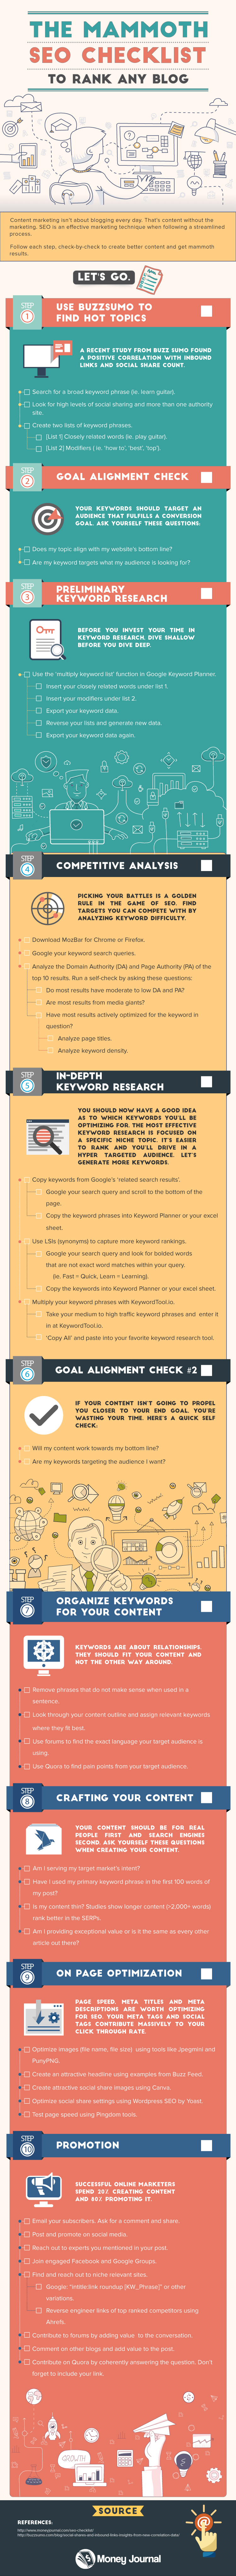 Mammoth blog SEO listing infographic